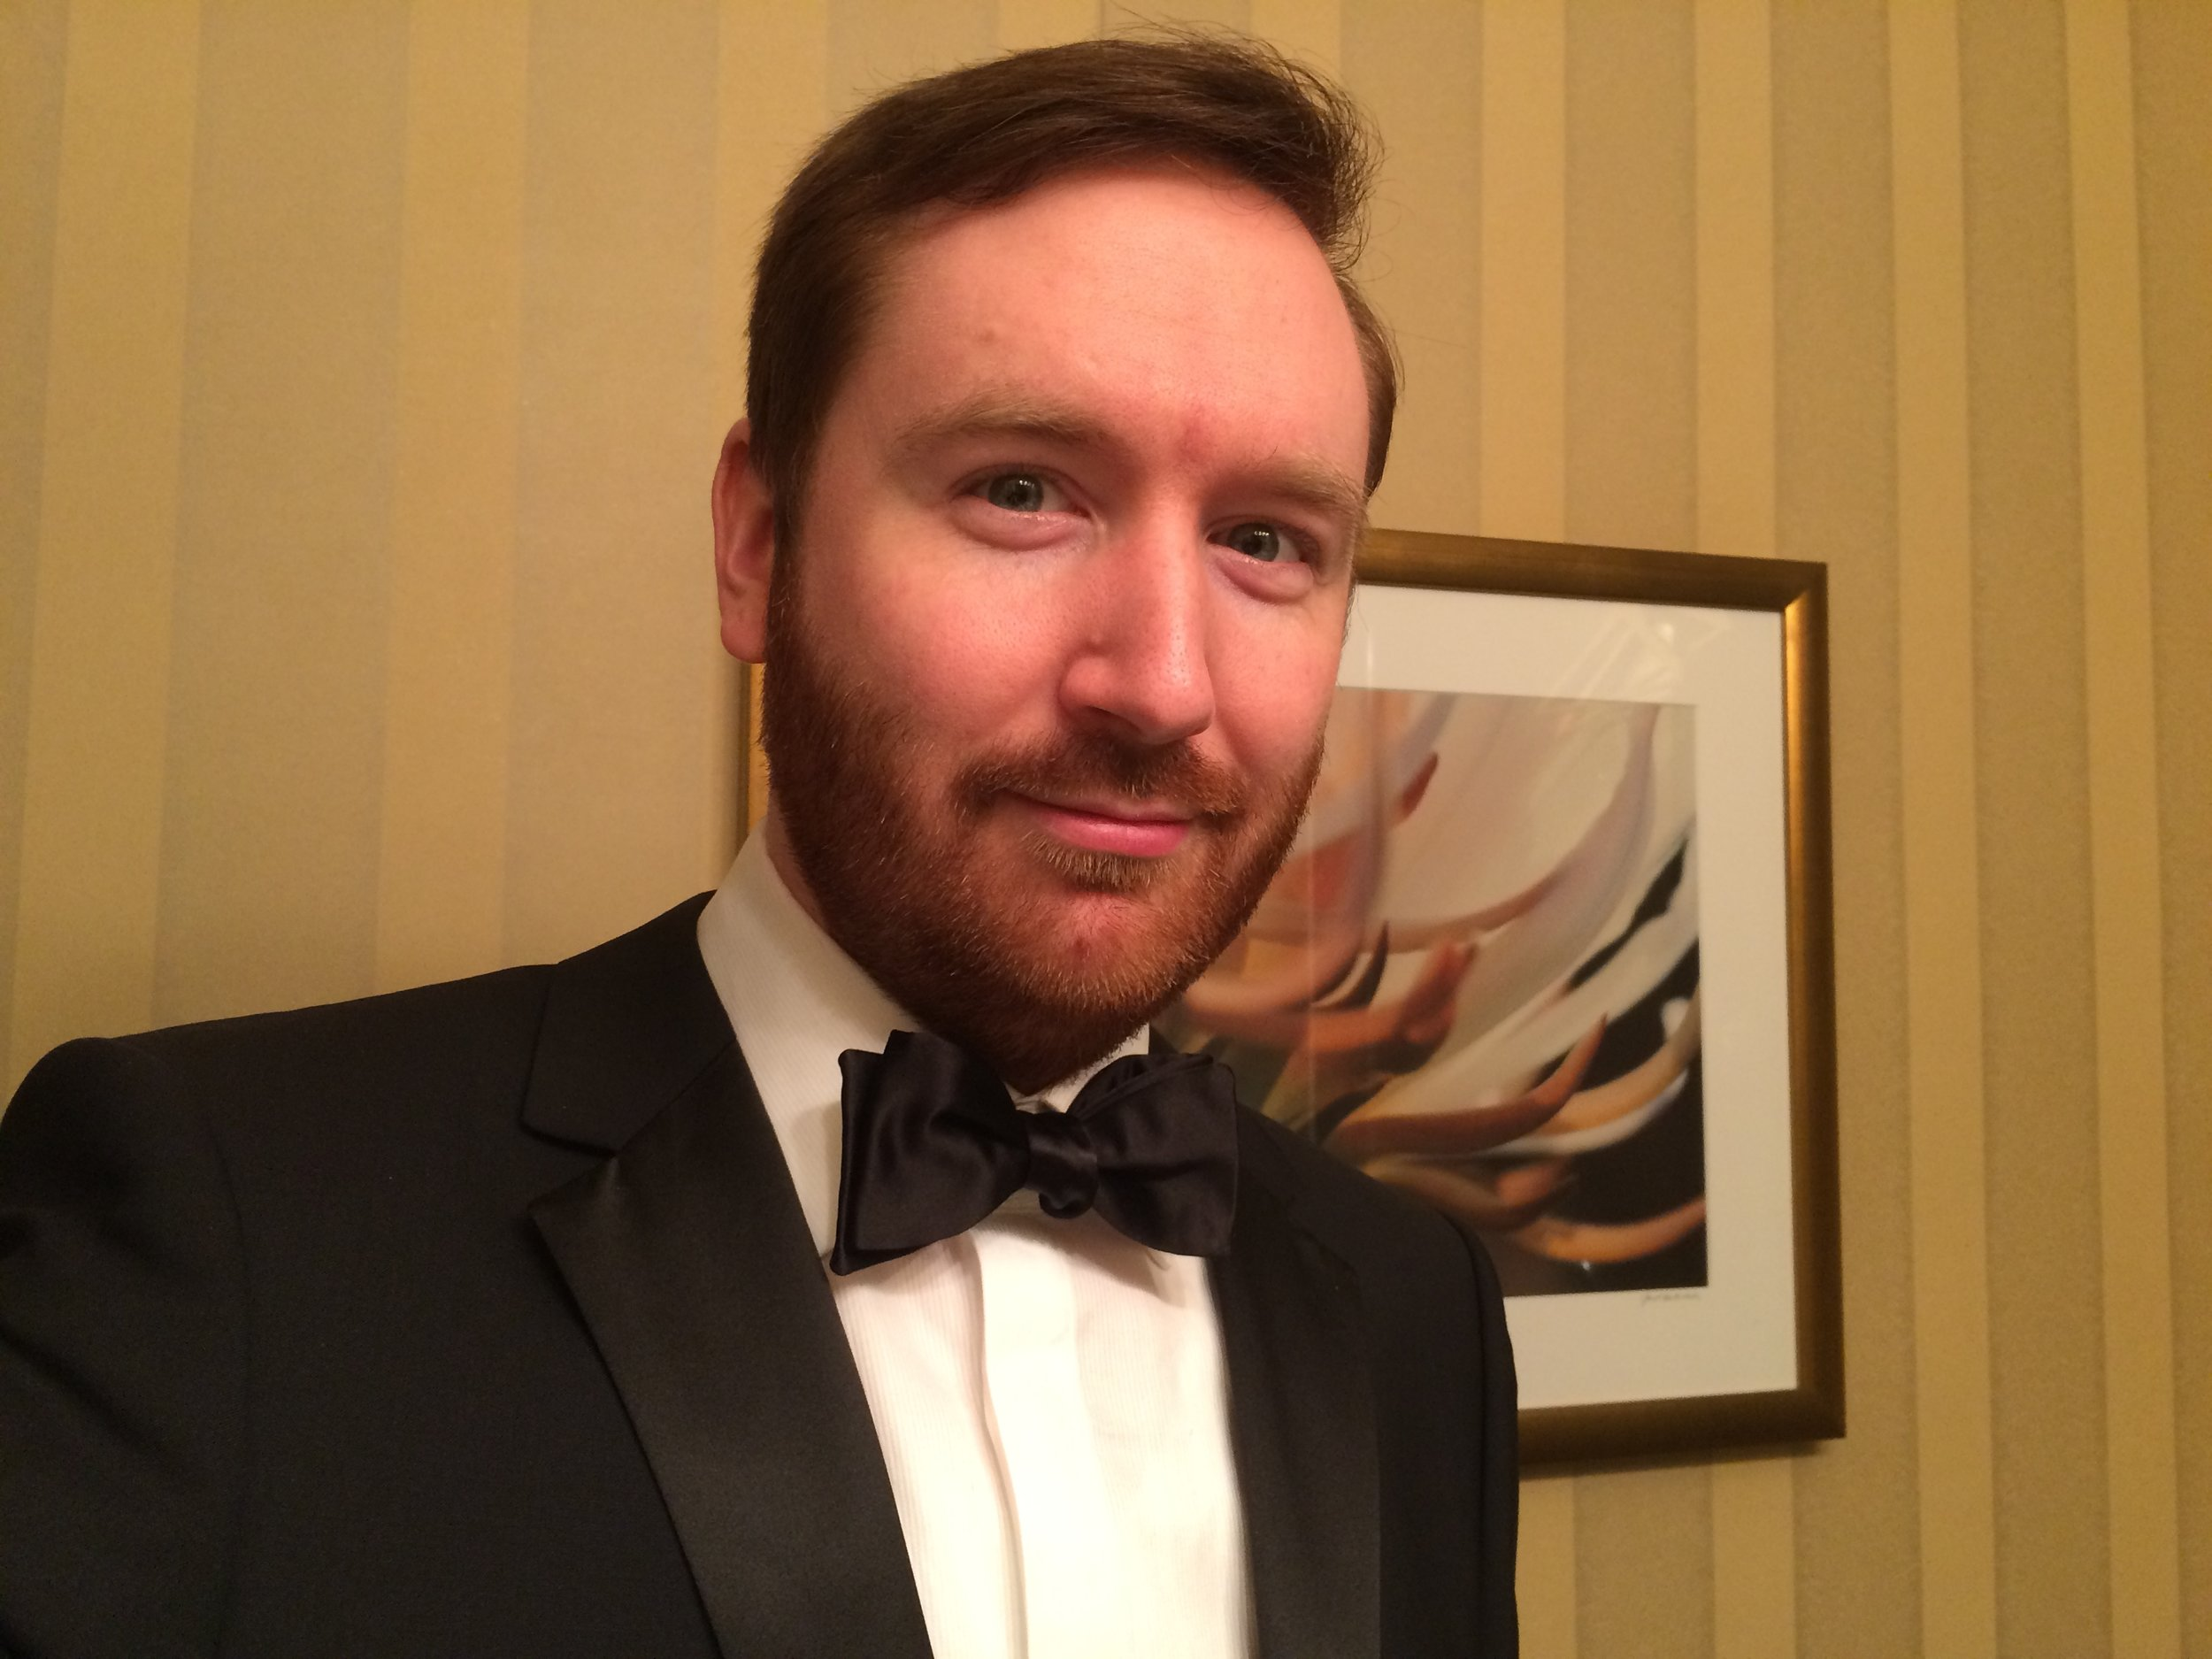 This is what I look like in a tuxedo. With a small camera, I'm allowed to walk onto the red carpet at the White House Correspondents' Dinner.